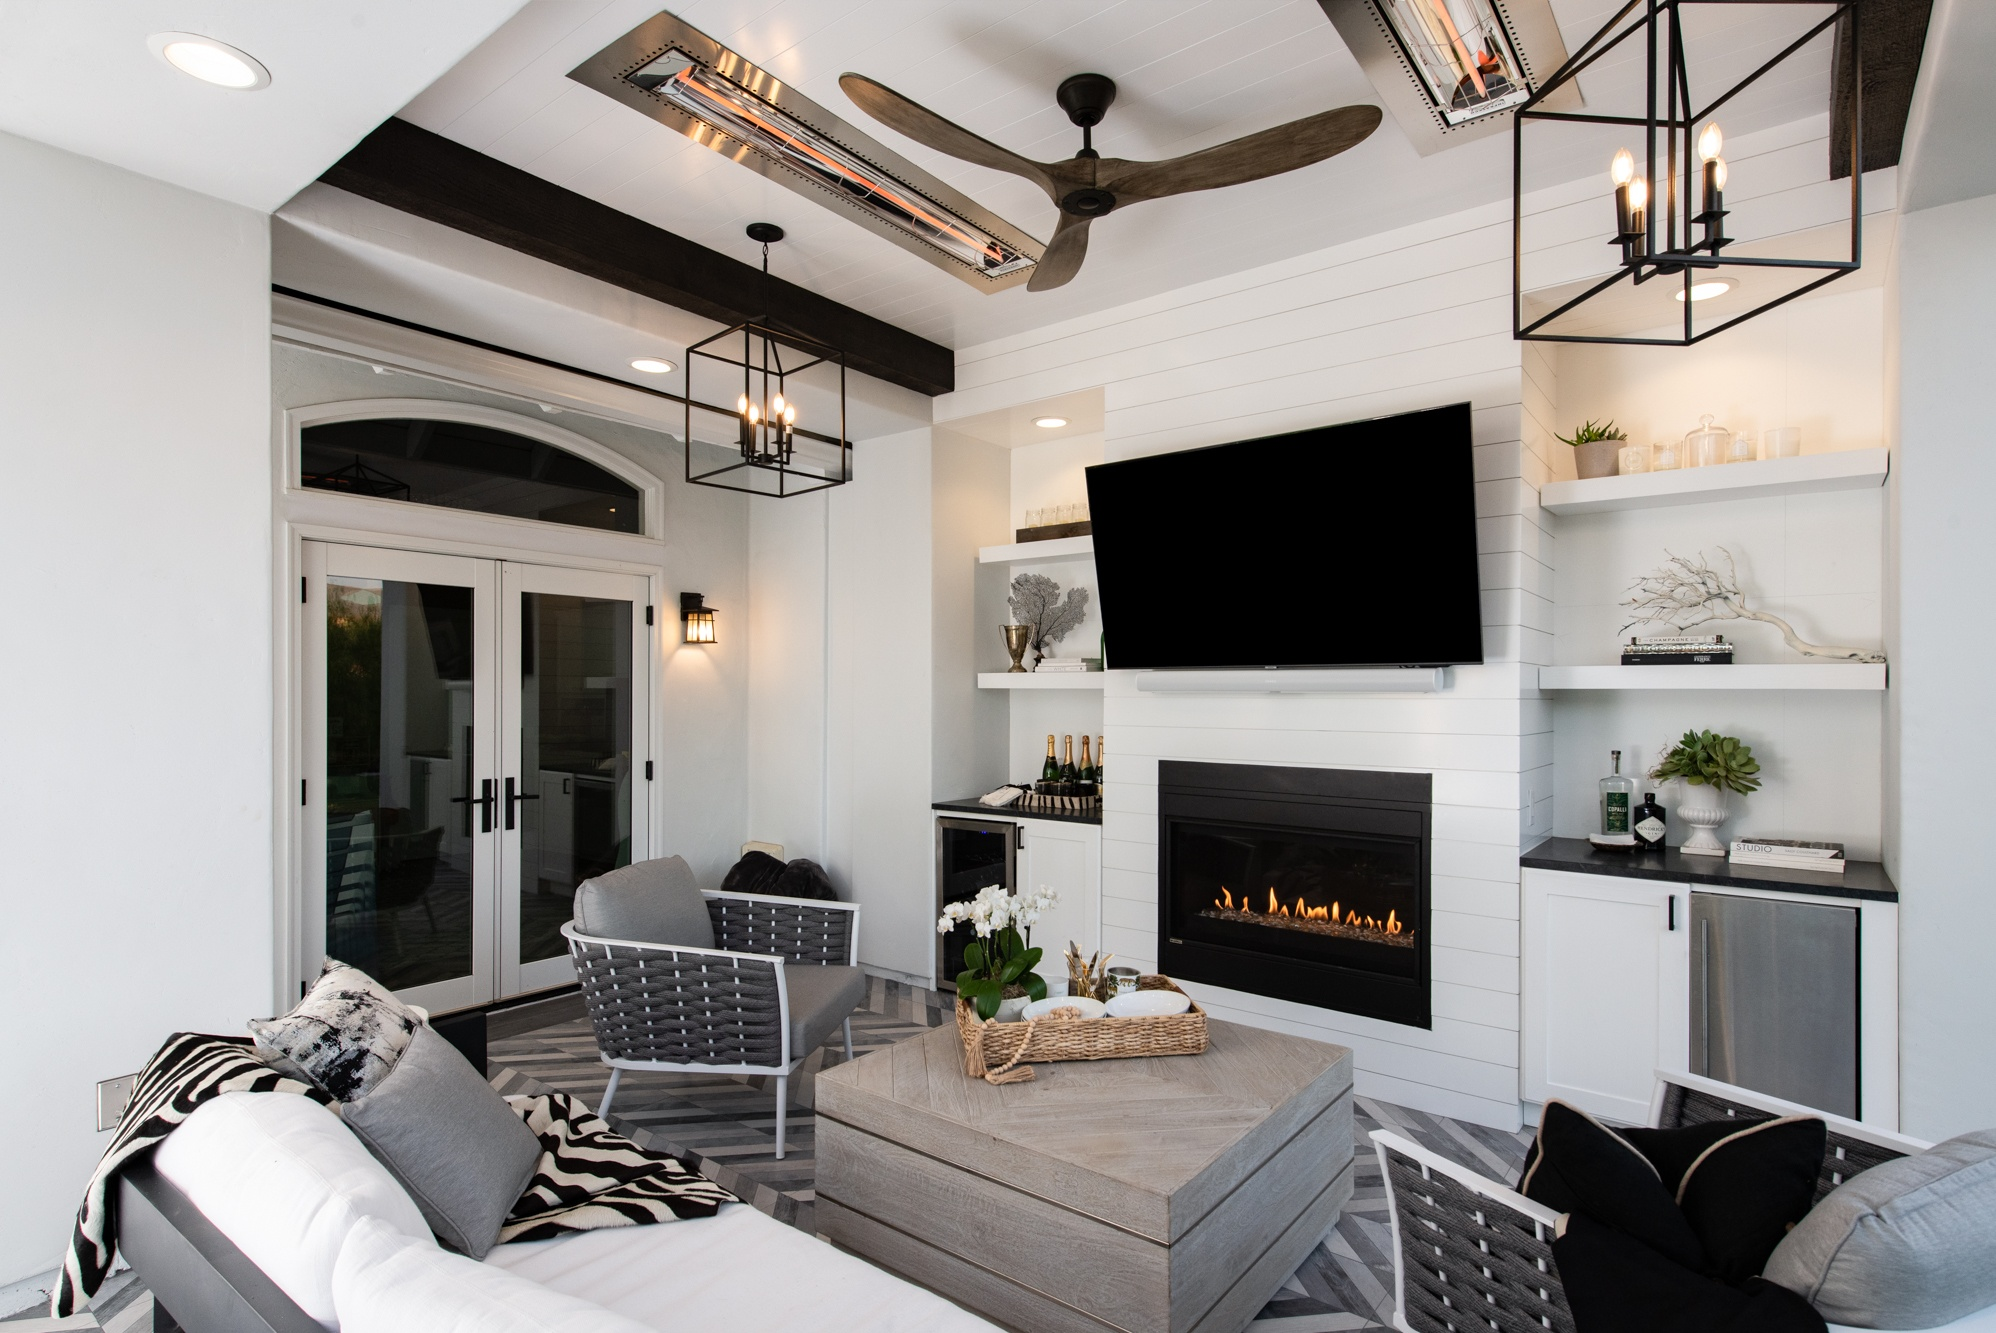 open layout in outdoor living